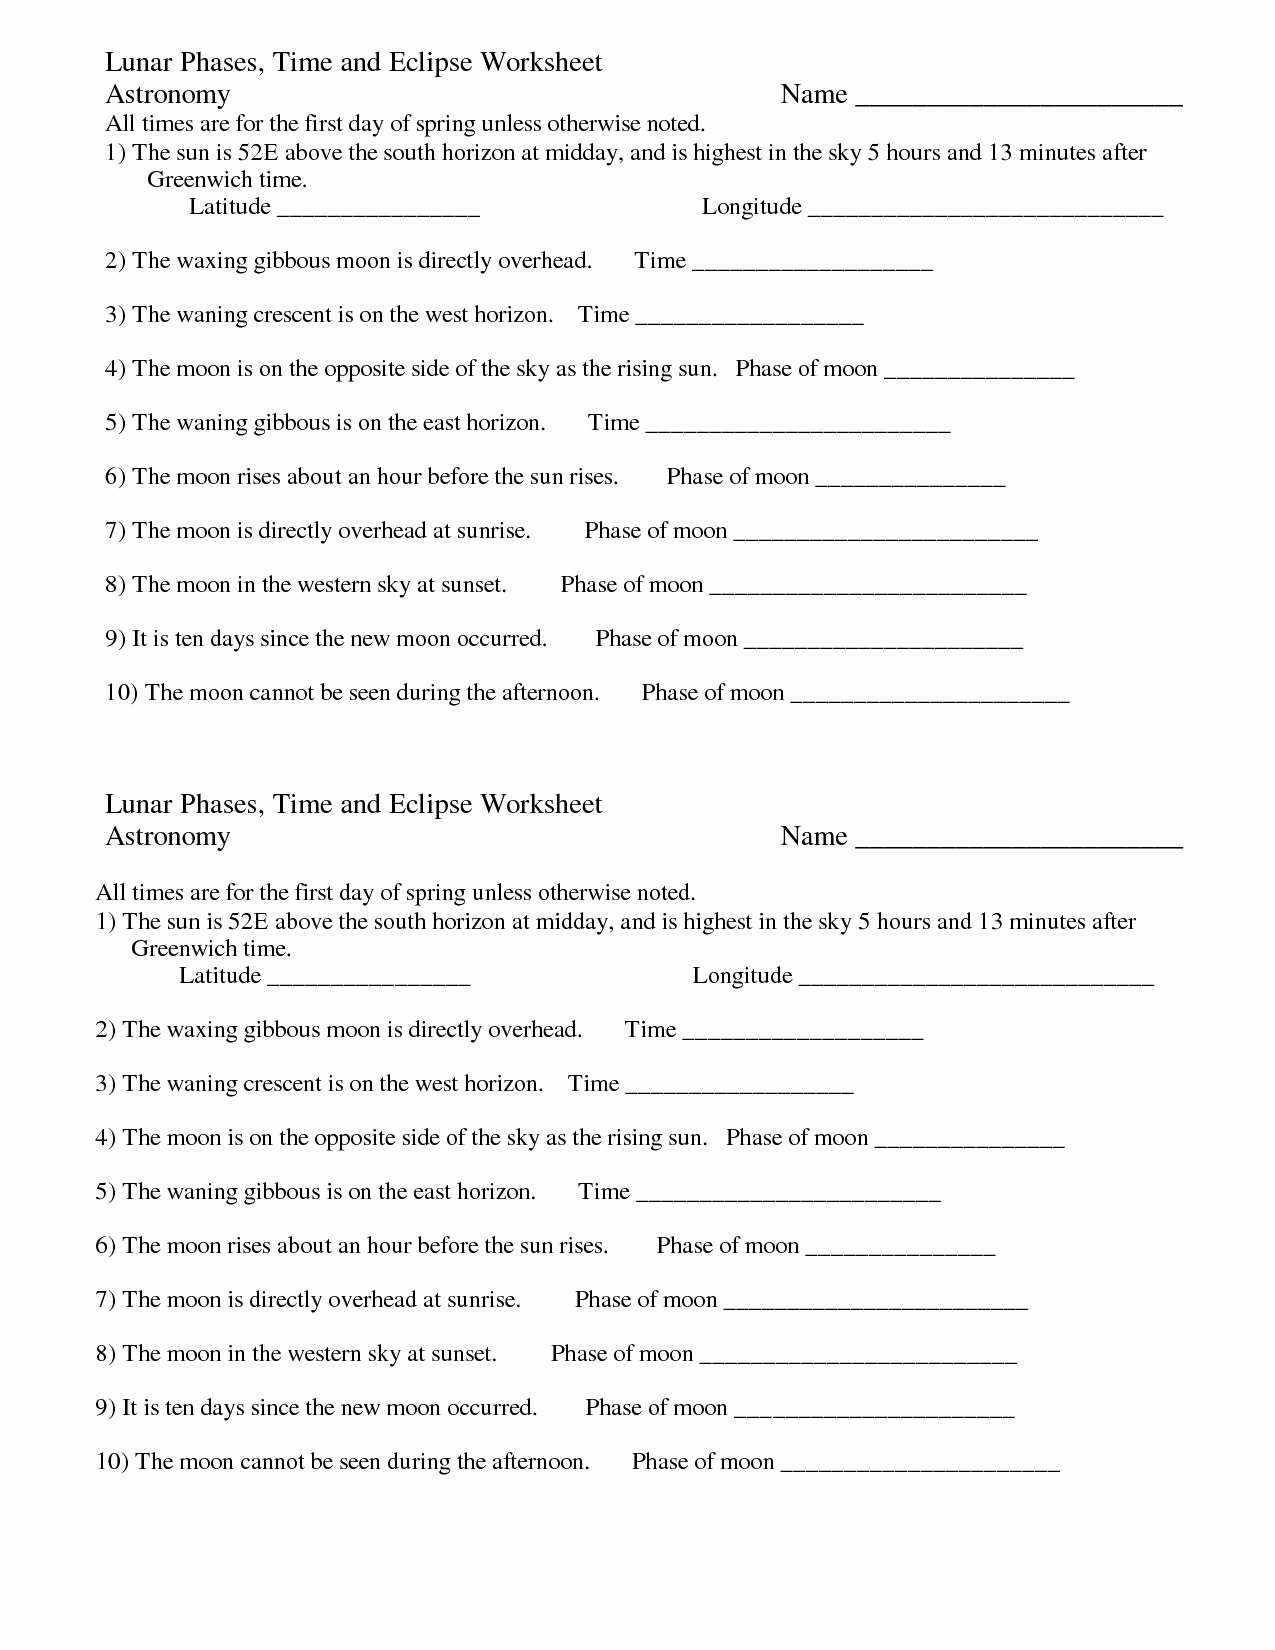 Eclipse Worksheets for Middle School Fresh 30 Eclipse Worksheet Middle School Worksheet Iist source